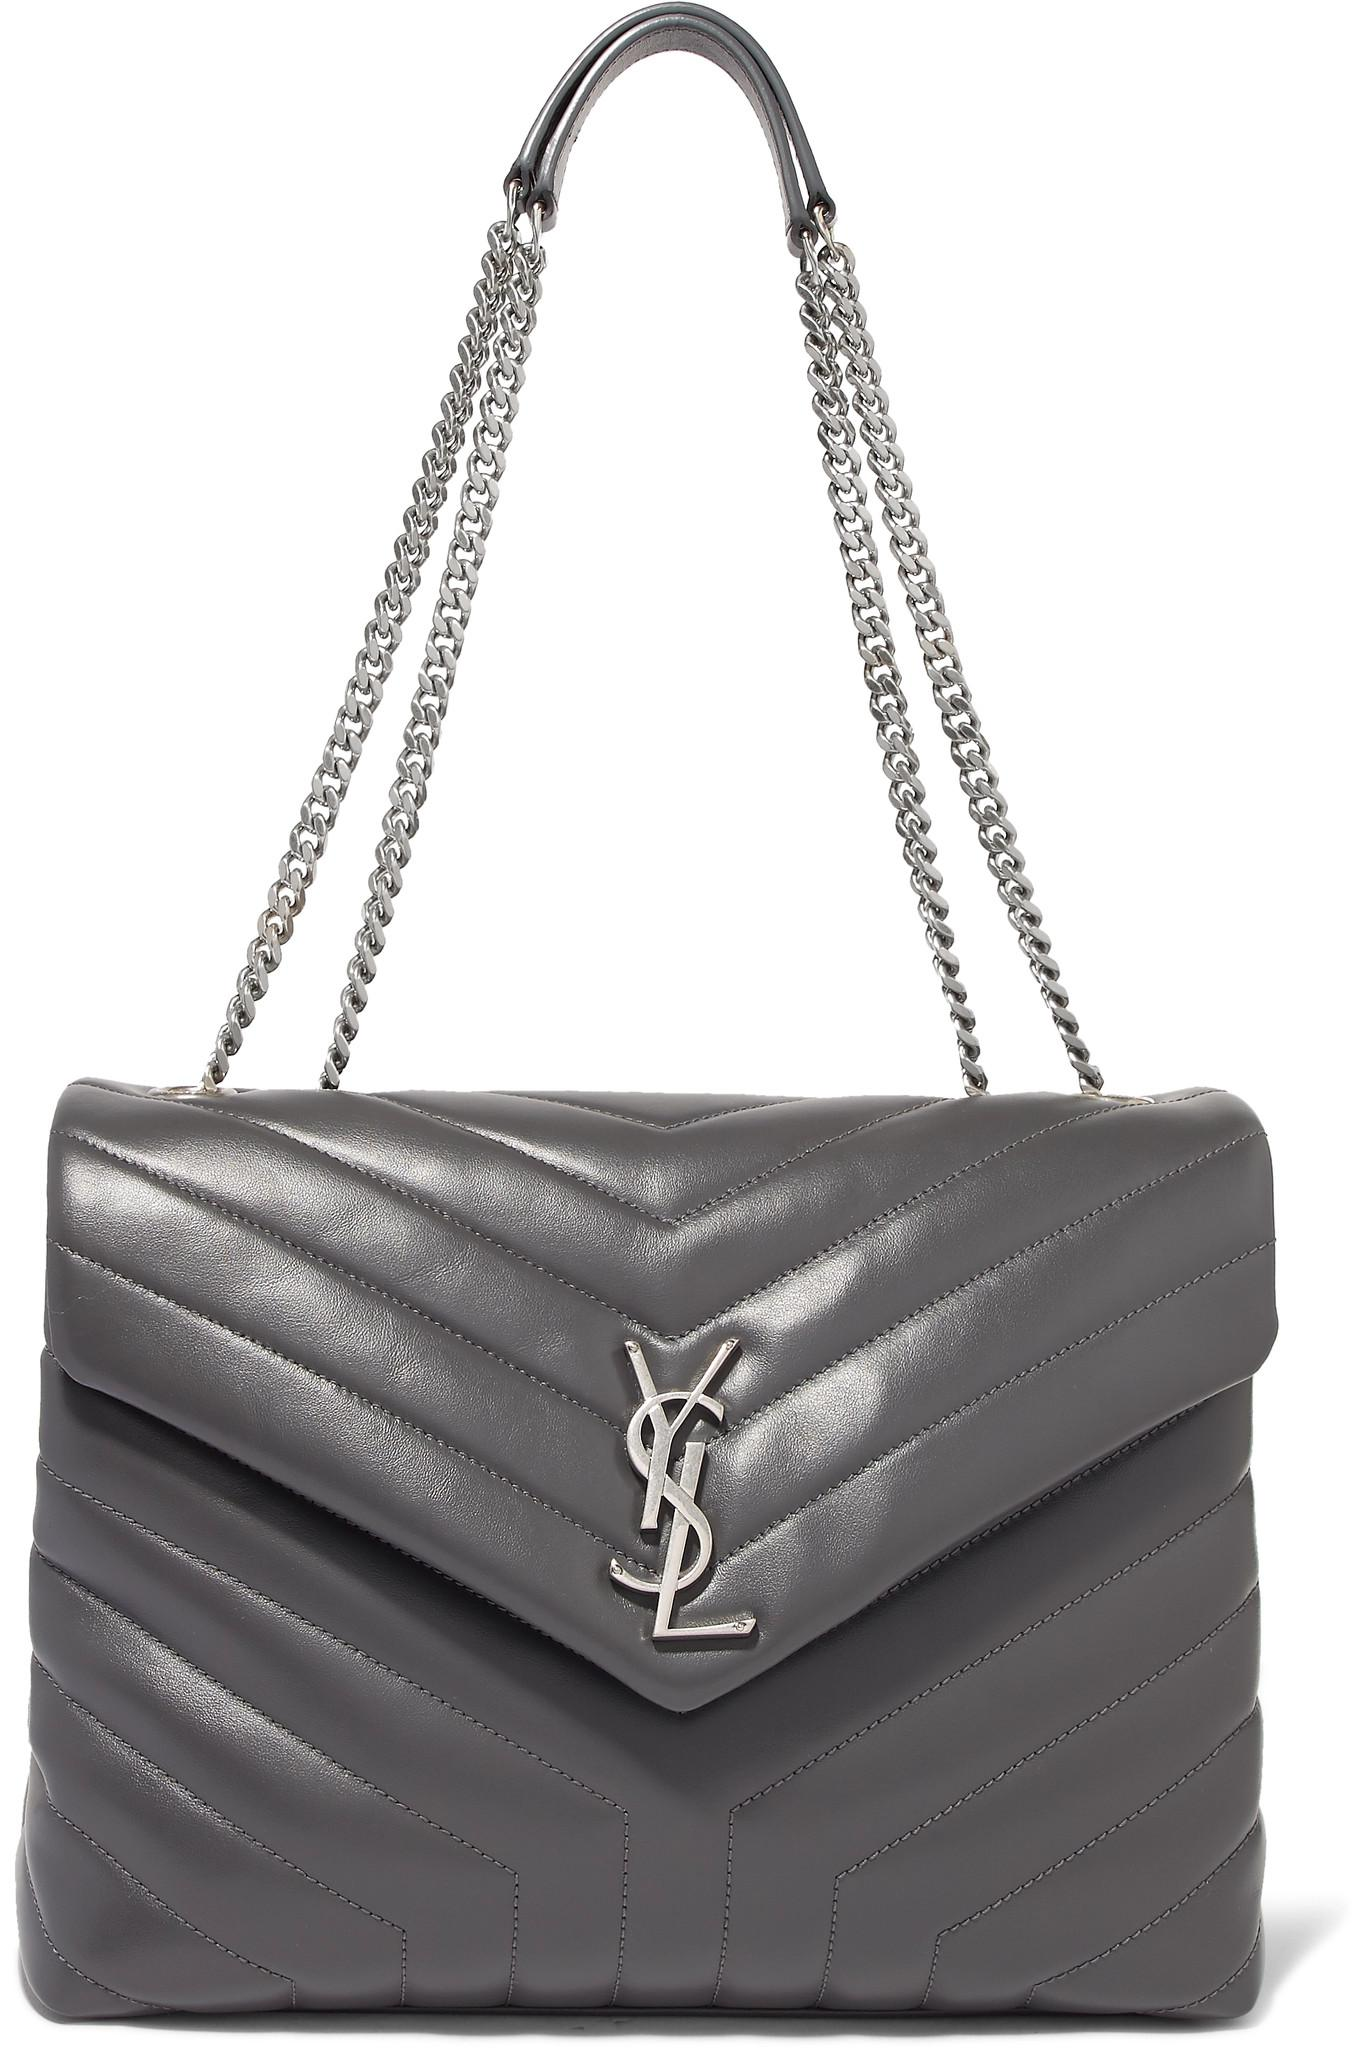 Loulou Medium Quilted Leather Shoulder Bag - Gray Saint Laurent WqUo02gvR